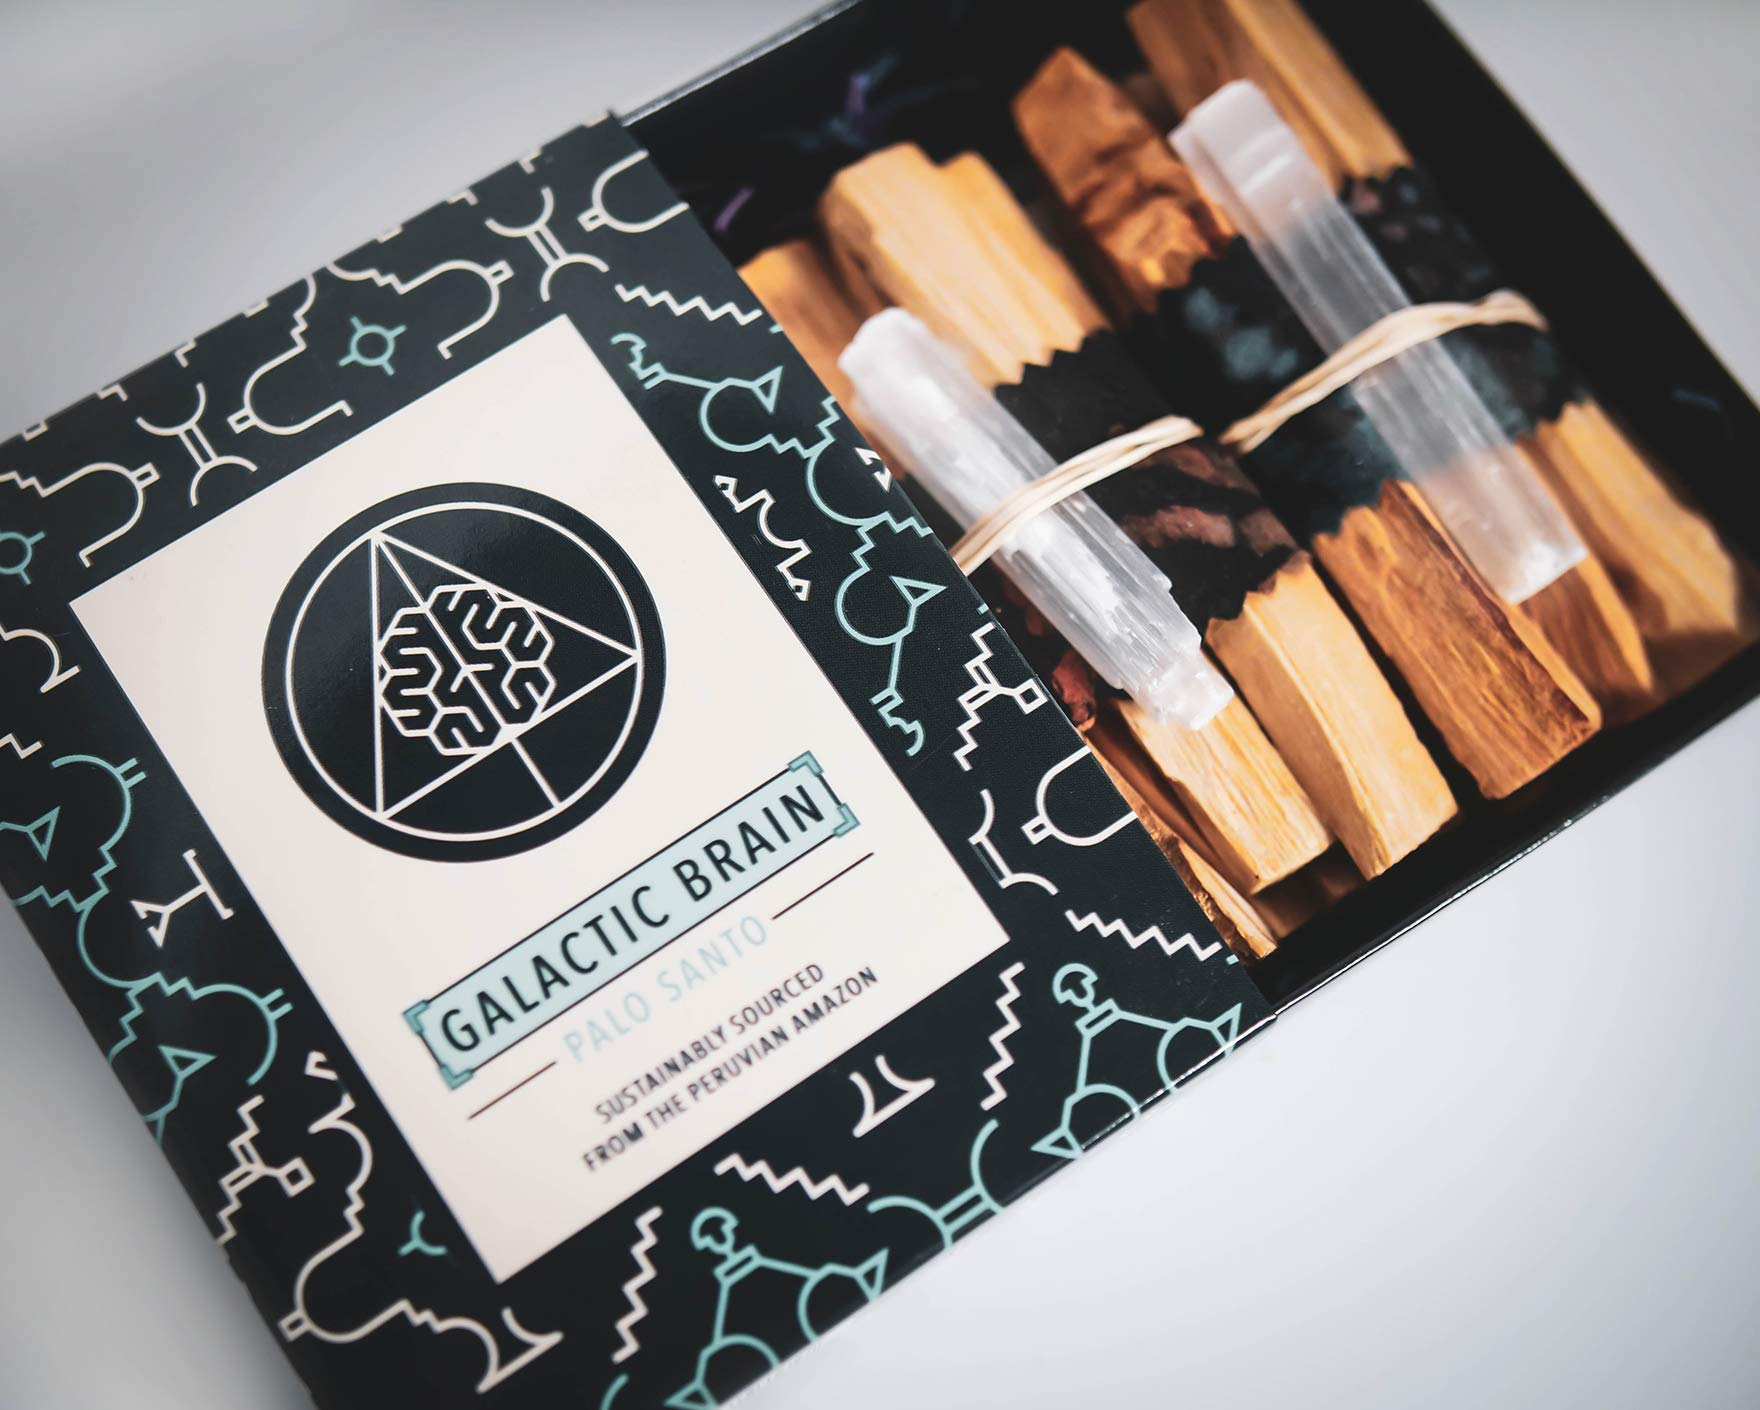 Galactic Brain Palo Santo Sticks | 12 High Resin Smudge Sticks Bundled with Selenite Stones | 90 Grams Palo Santo Wood for Cleansing Your Home by Galactic Brain (Image #2)